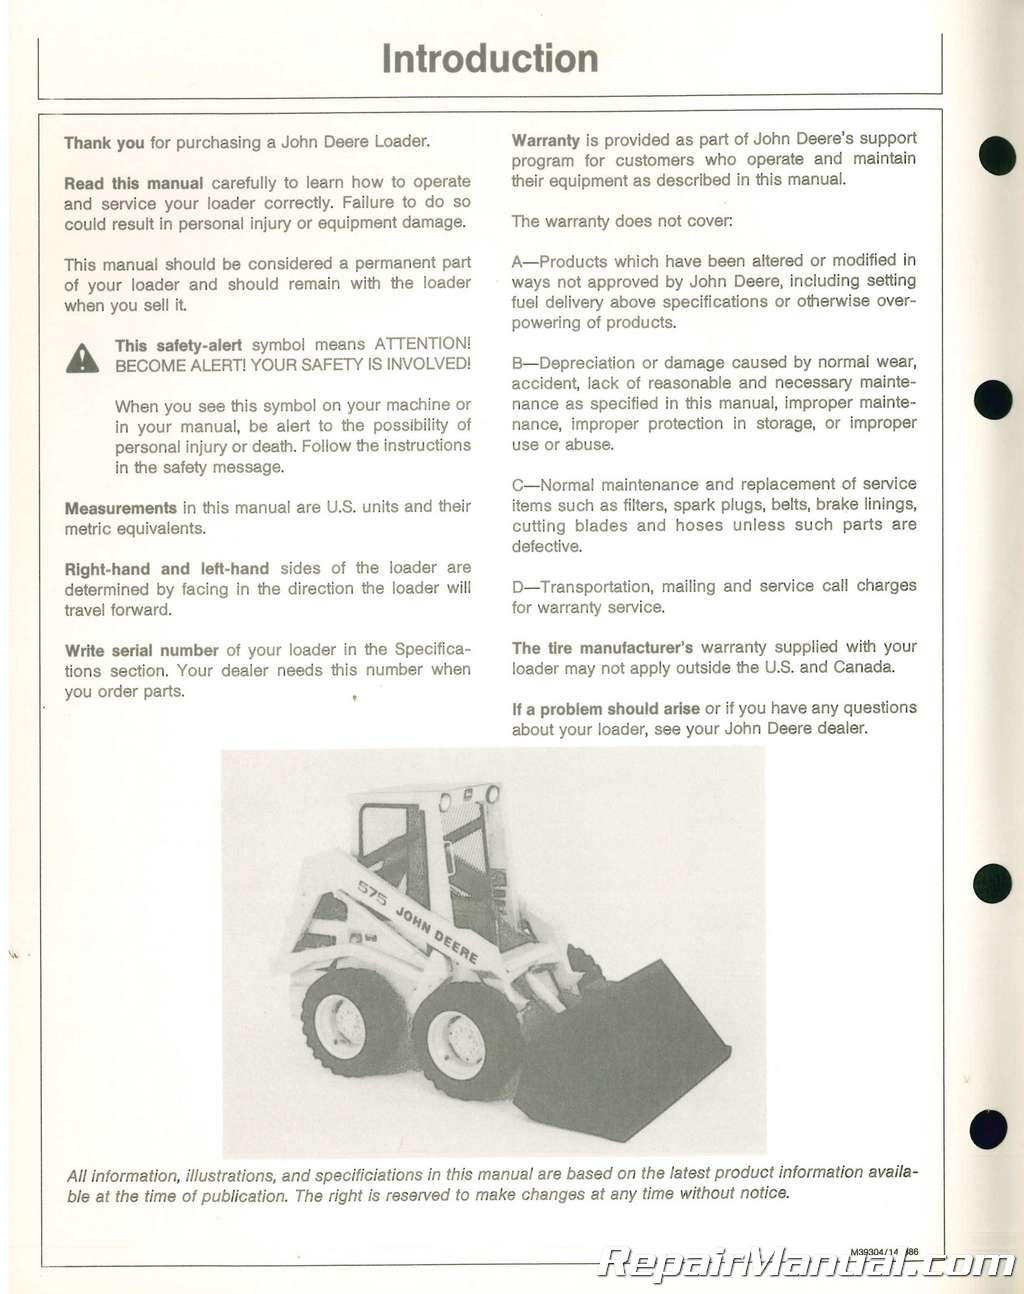 Used John Deere 575 Skid Steer Loader Operators Manual Issue E6